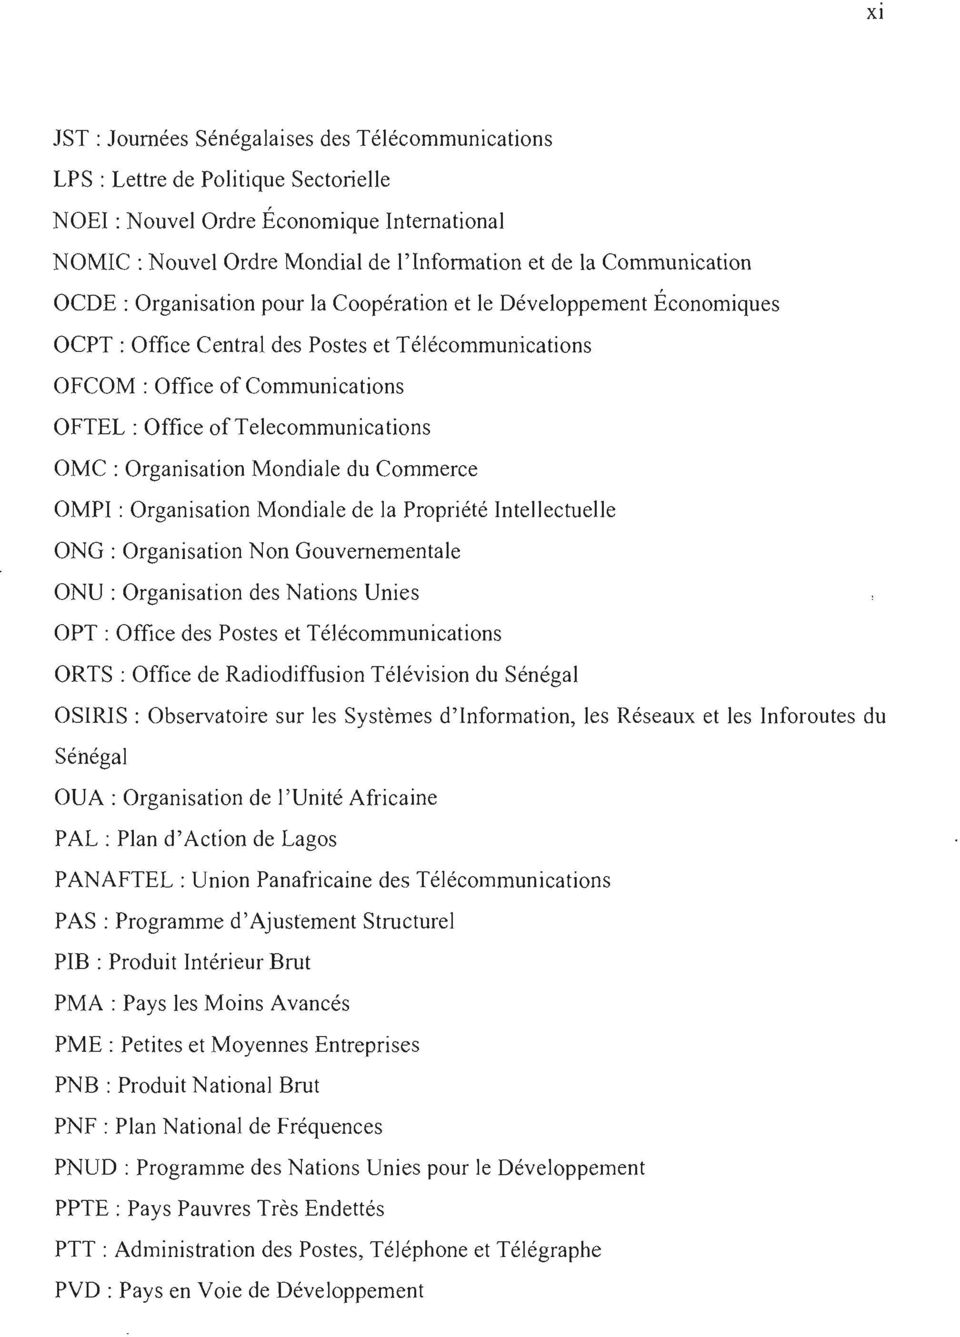 Telecommunications OMC : Organisation Mondiale du Commerce OMPI : Organisation Mondiale de la Propriété Intellectuelle ONG: Organisation Non Gouvernementale ONU: Organisation des Nations Unies OPT :